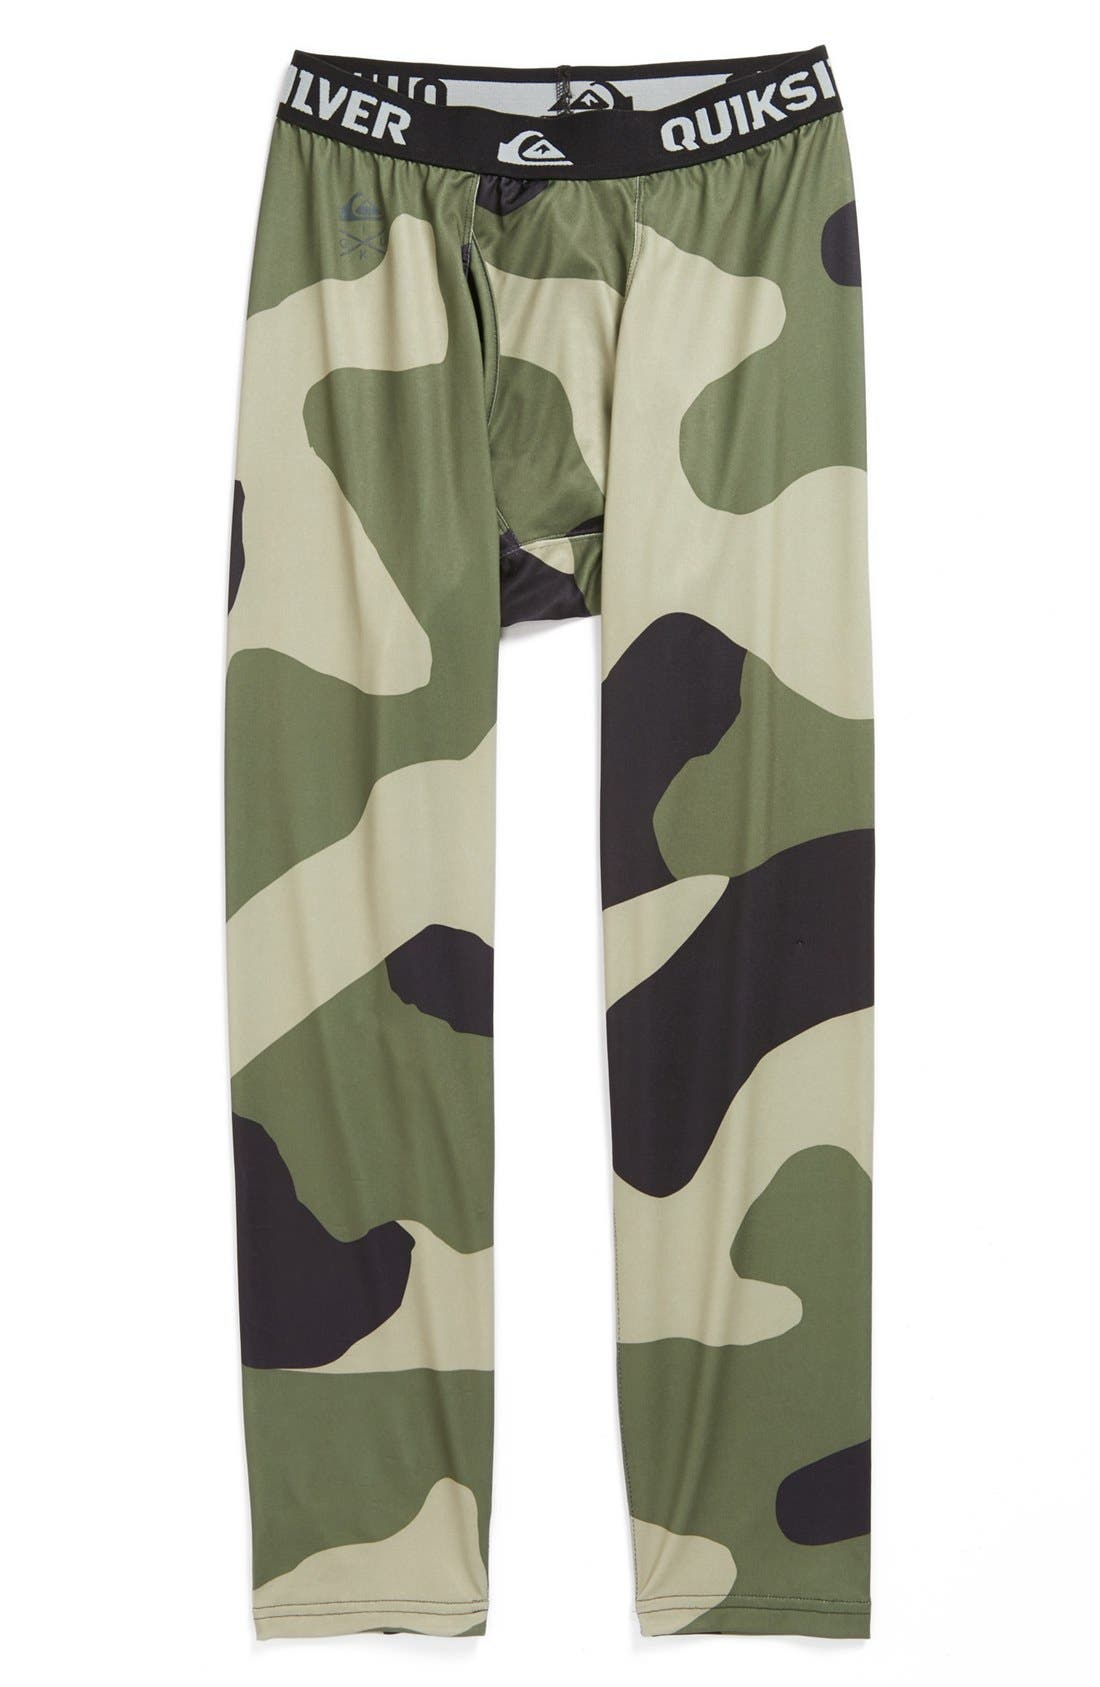 Main Image - Quiksilver 'Lloyd 1st Layer' Pants (Little Boys & Big Boys)